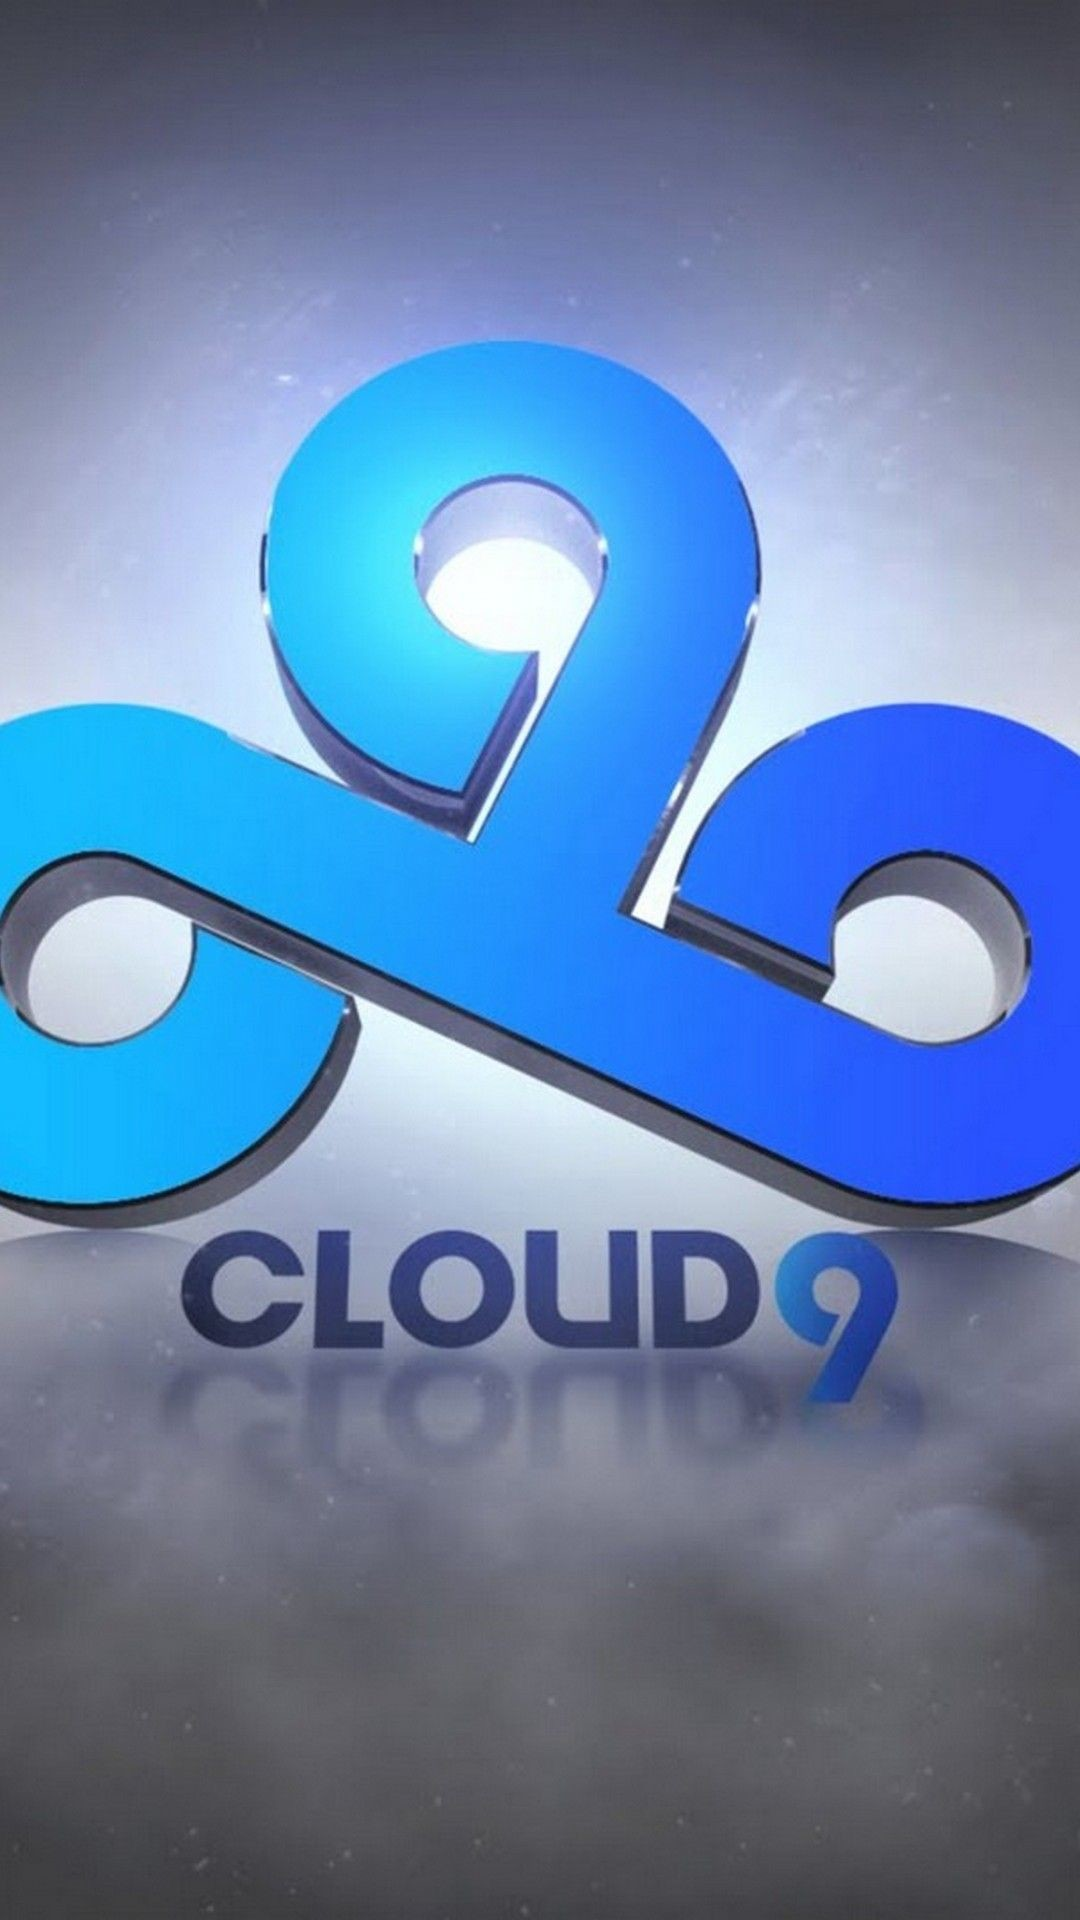 Cloud 9 Wallpapers Hd Wallpaper Collections 4kwallpaper Wiki